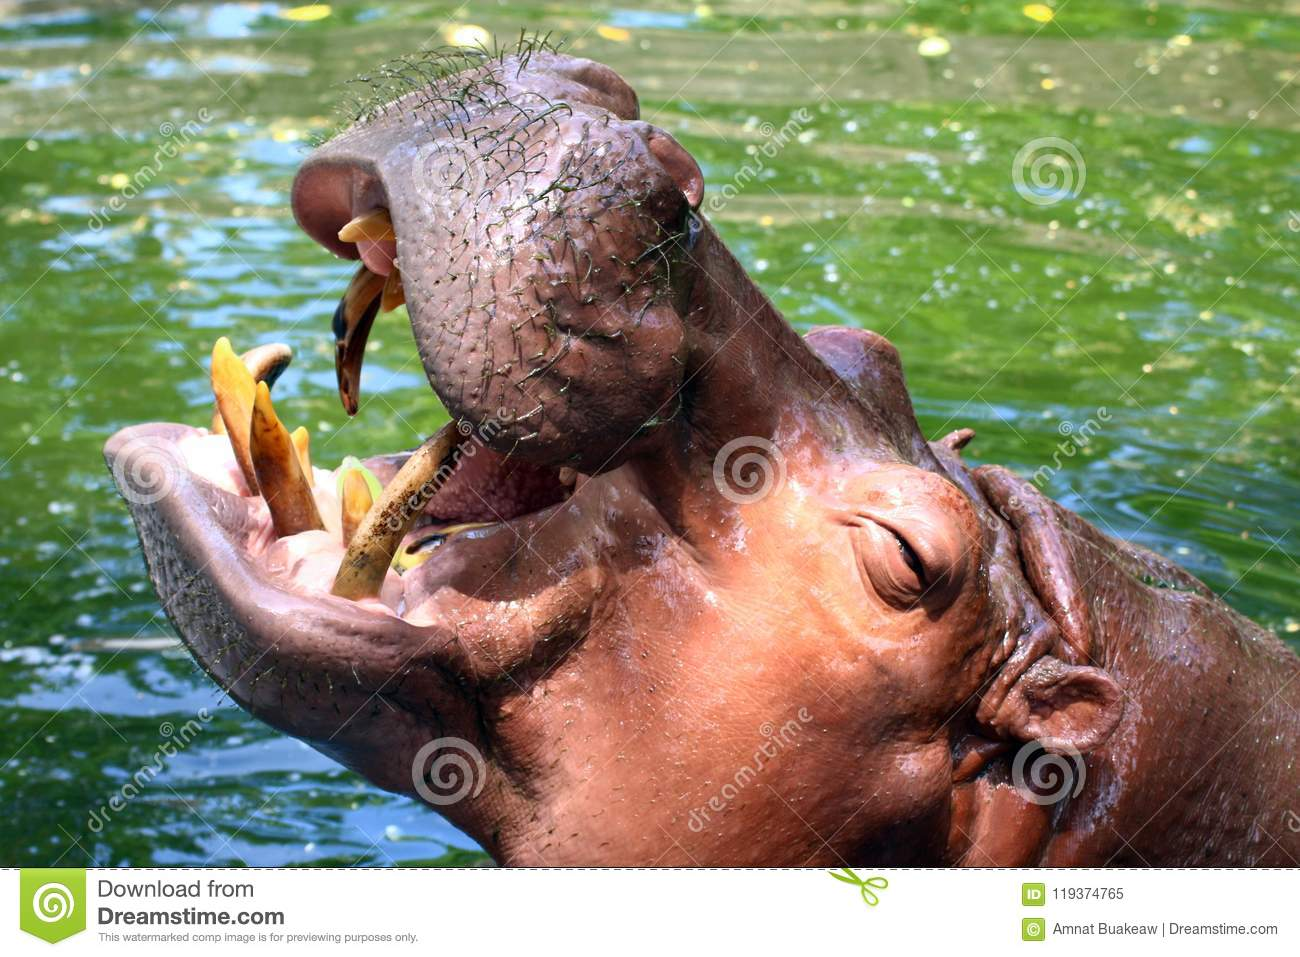 Hippo, Hippopotamus open mouth, Hippopotamus in water close up